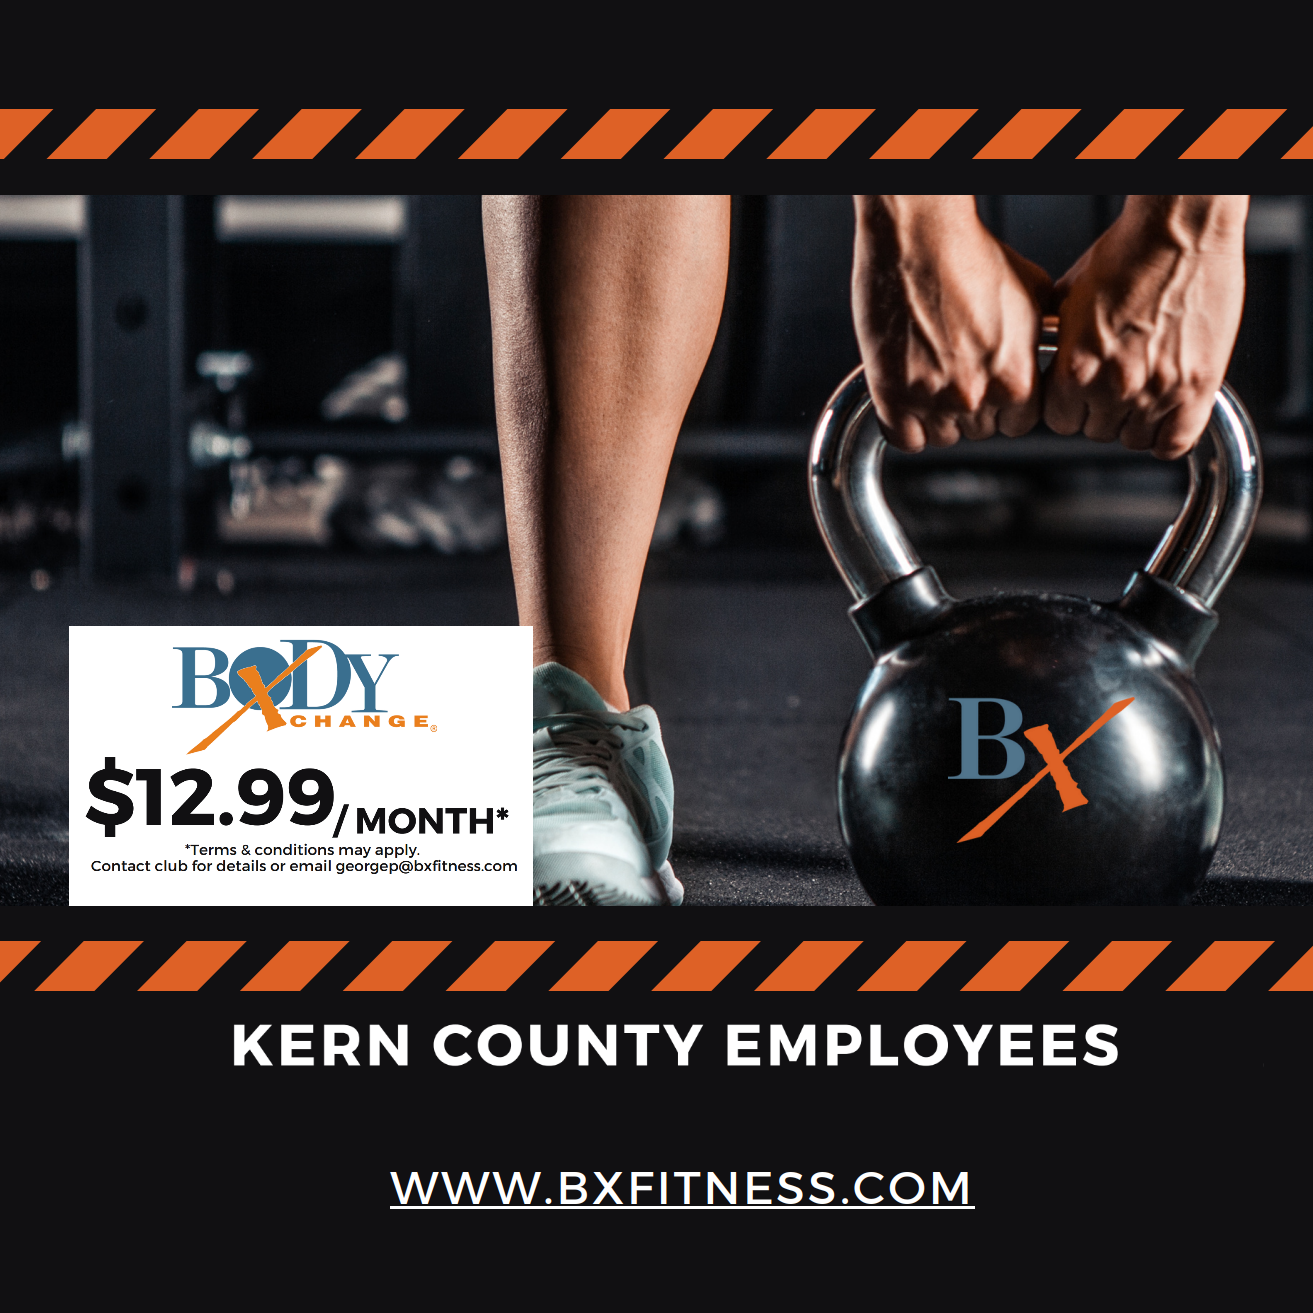 BodyXchange Flyer